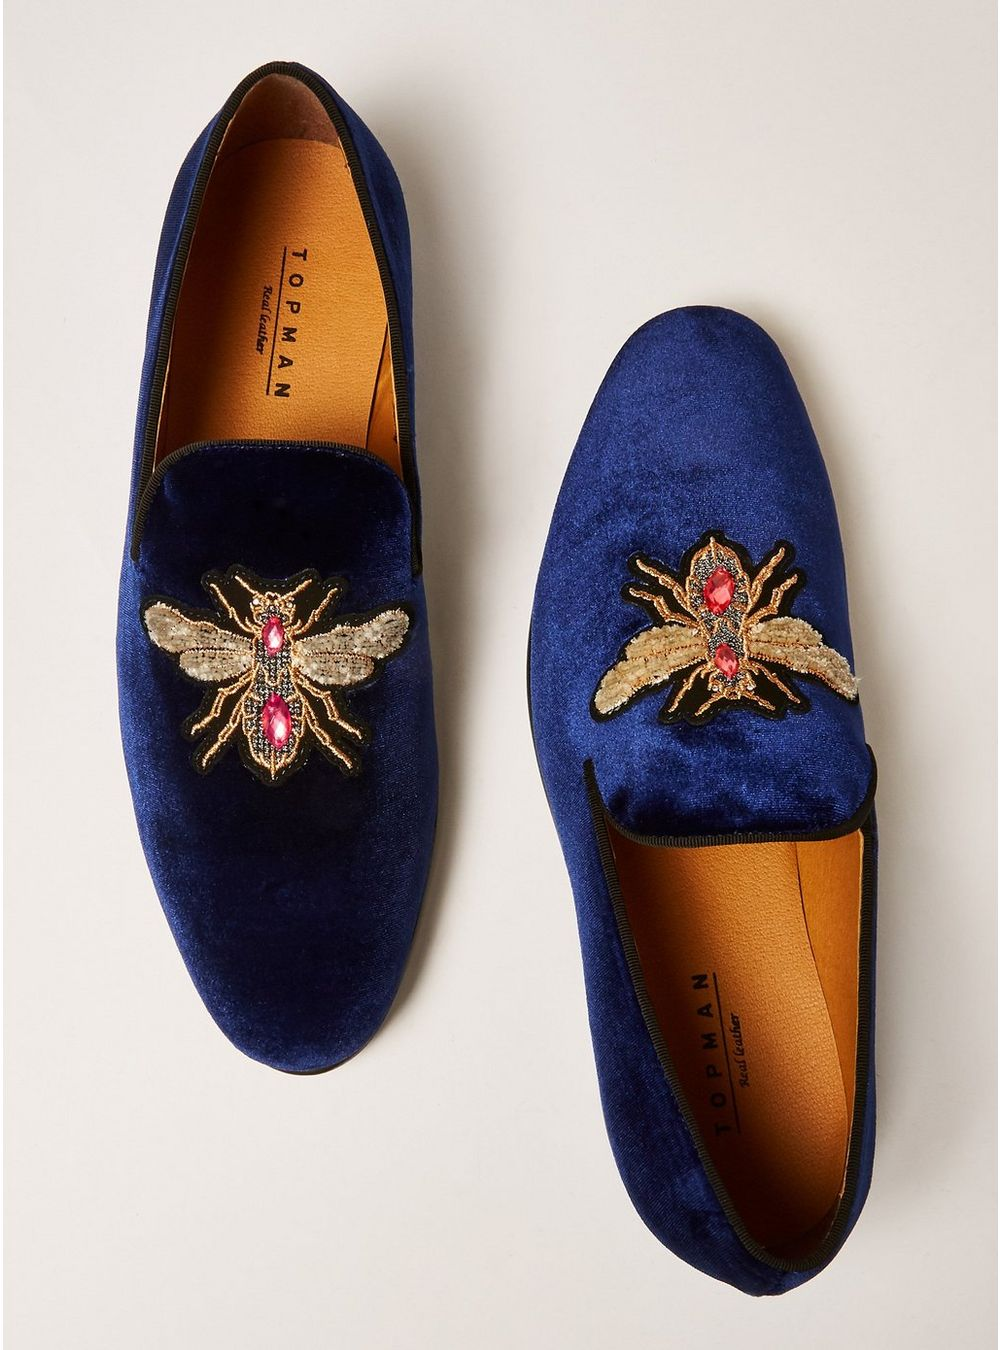 Topman navy loafers - £69 - It's almost party season so invest in a new pair of swag, velvet loafers